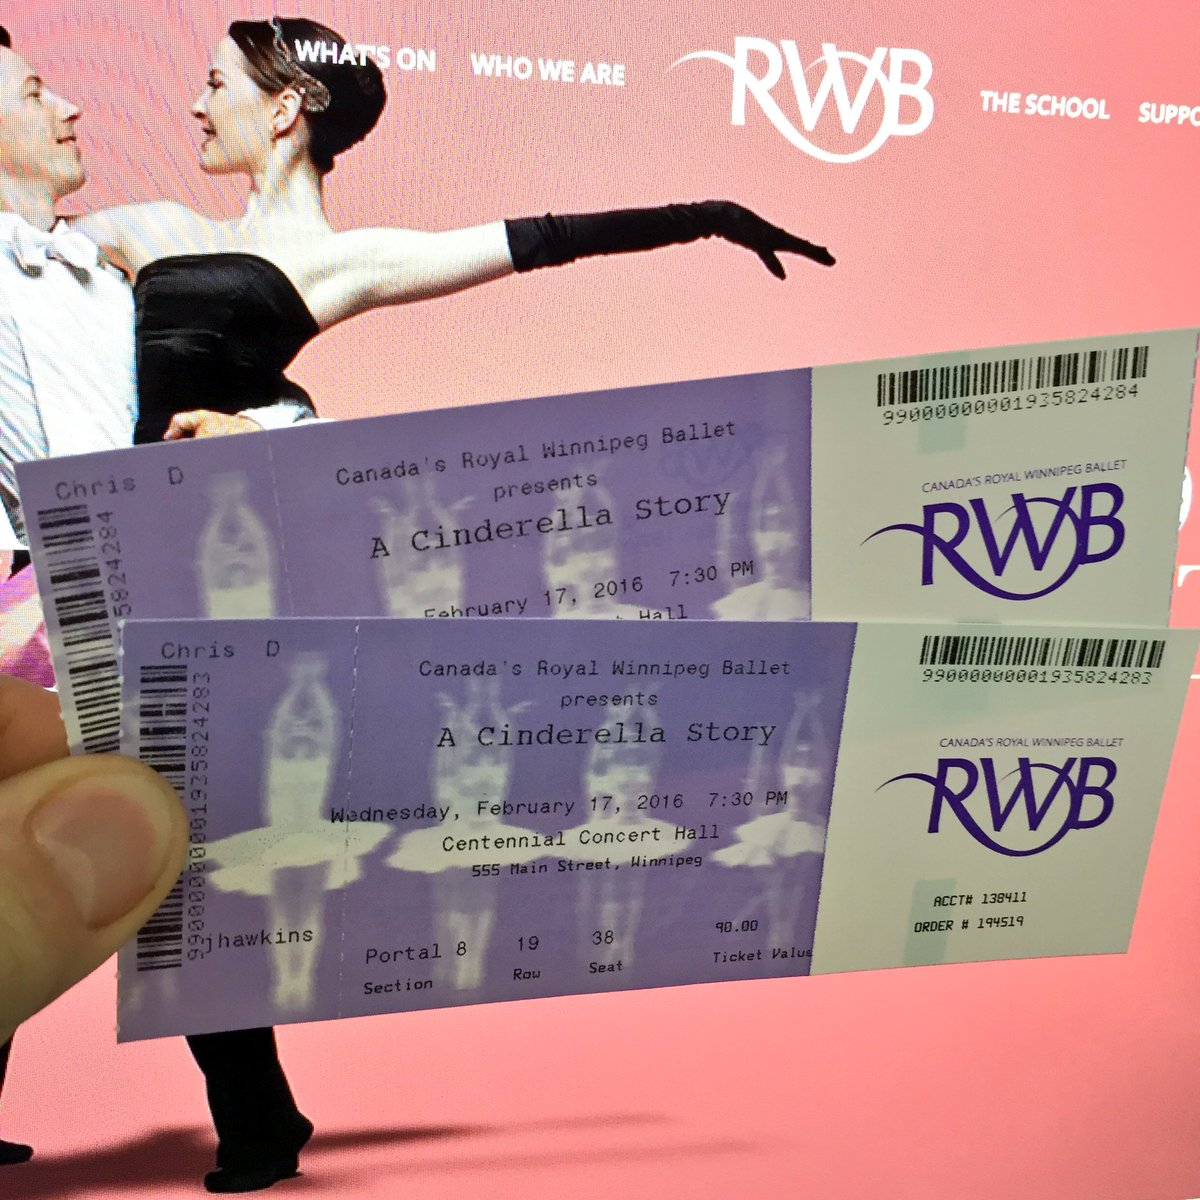 Who wants 2 tickets to @RWBallet's Cinderella Story on Feb. 17? Will pick a winner tomorrow after 4:30. RT to enter! https://t.co/zFasAIDJnf